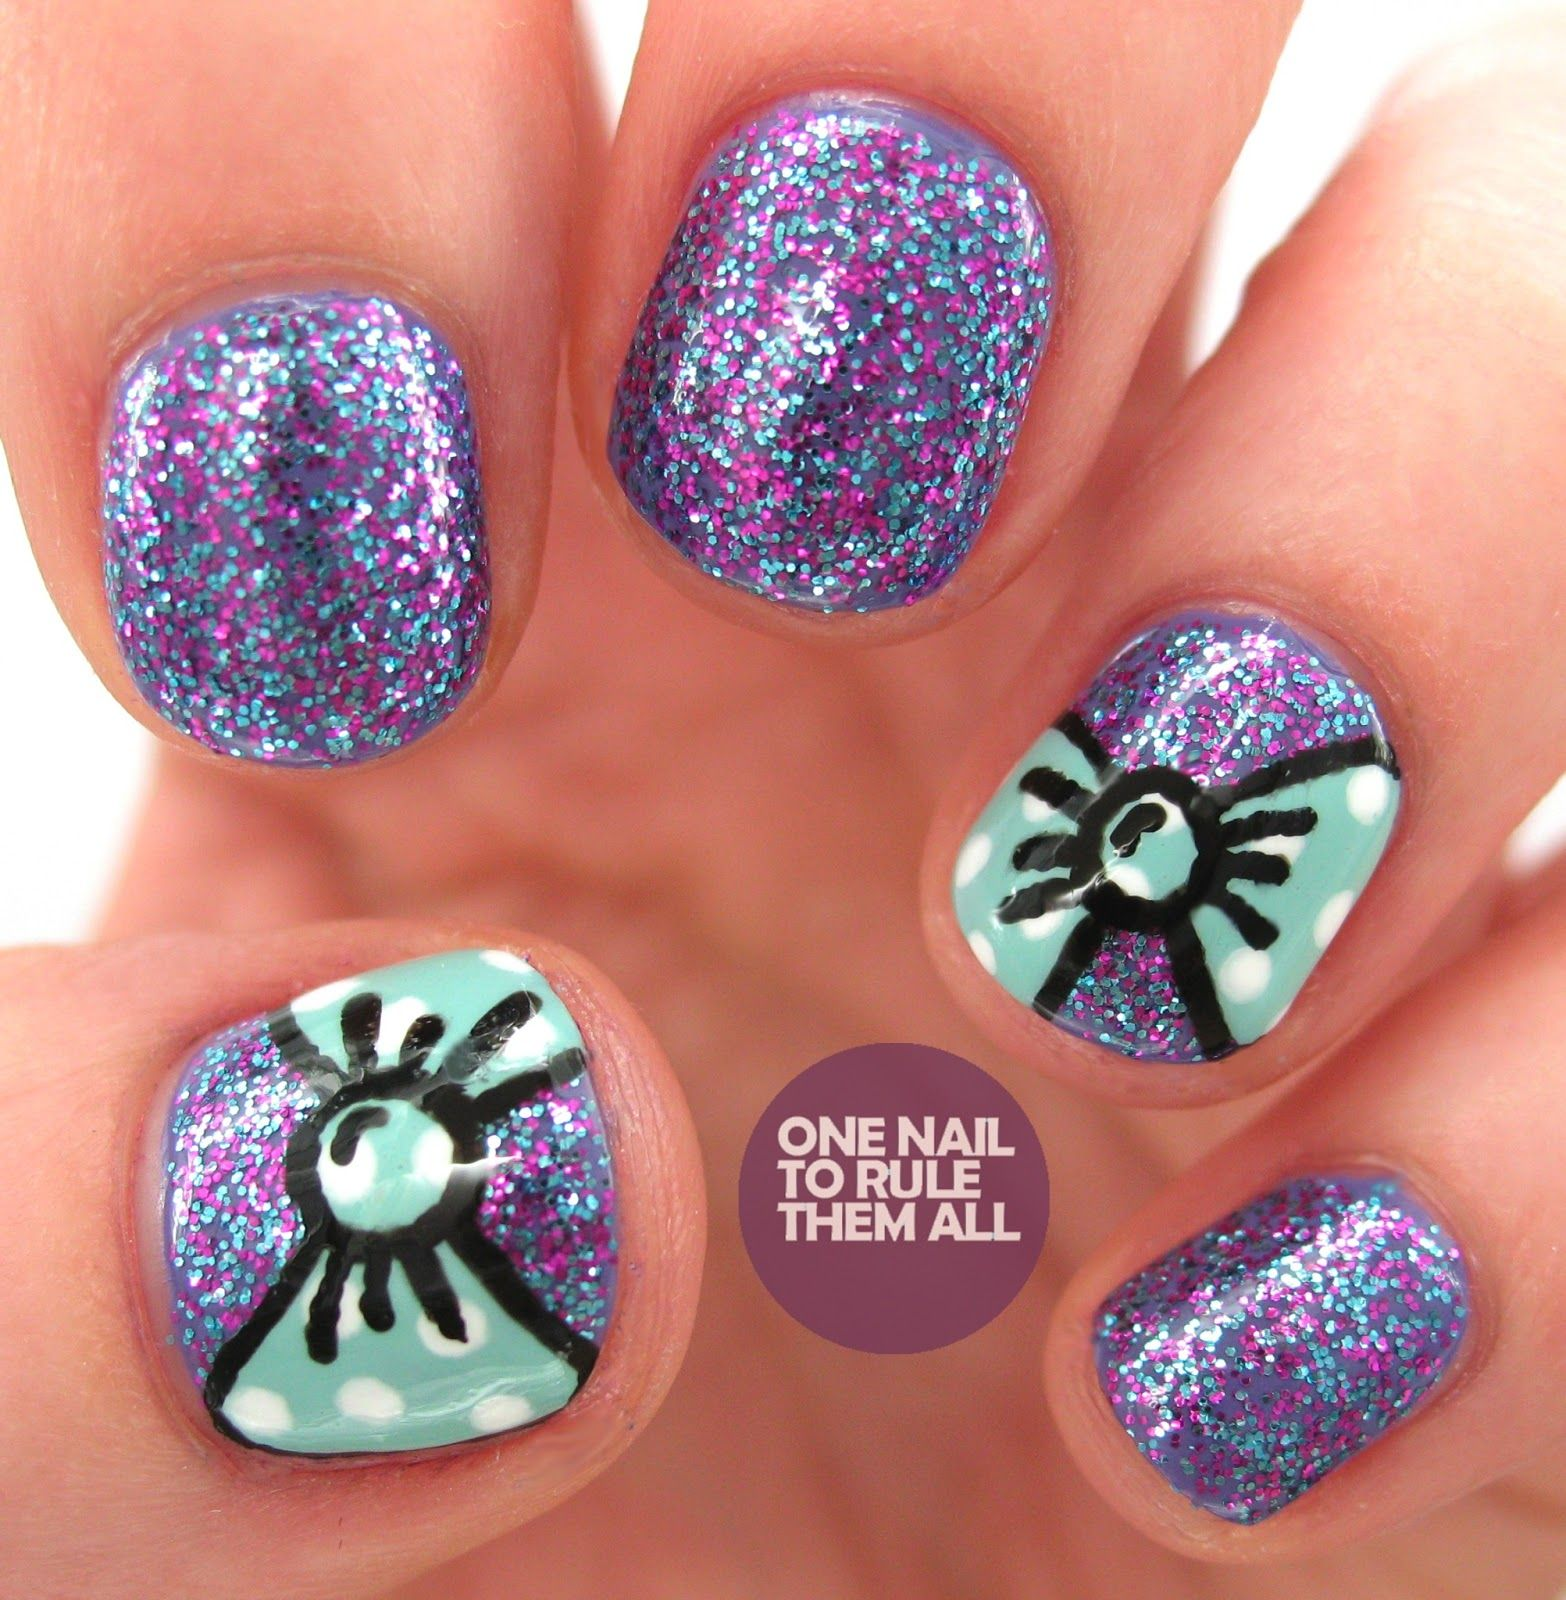 One Nail To Rule Them All Barry M Nail Art Pens Review: One Nail To Rule Them All Bows